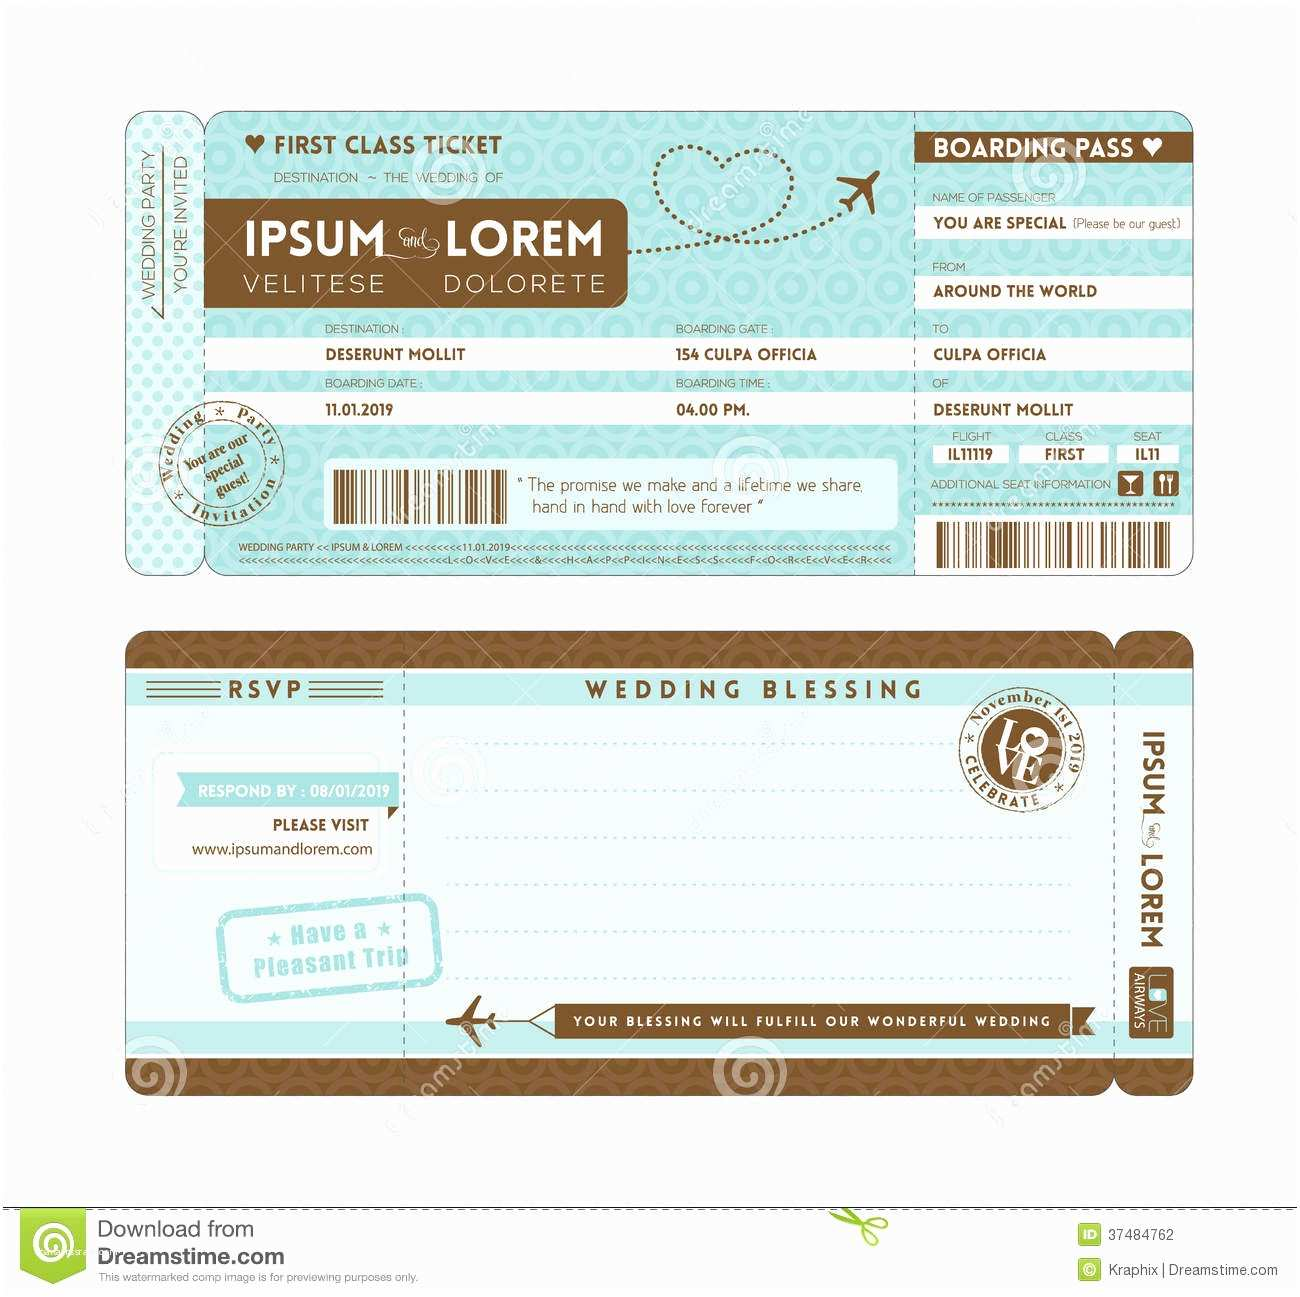 Plane Ticket Wedding Invitation Template Free Boarding Pass Cartoon Vector